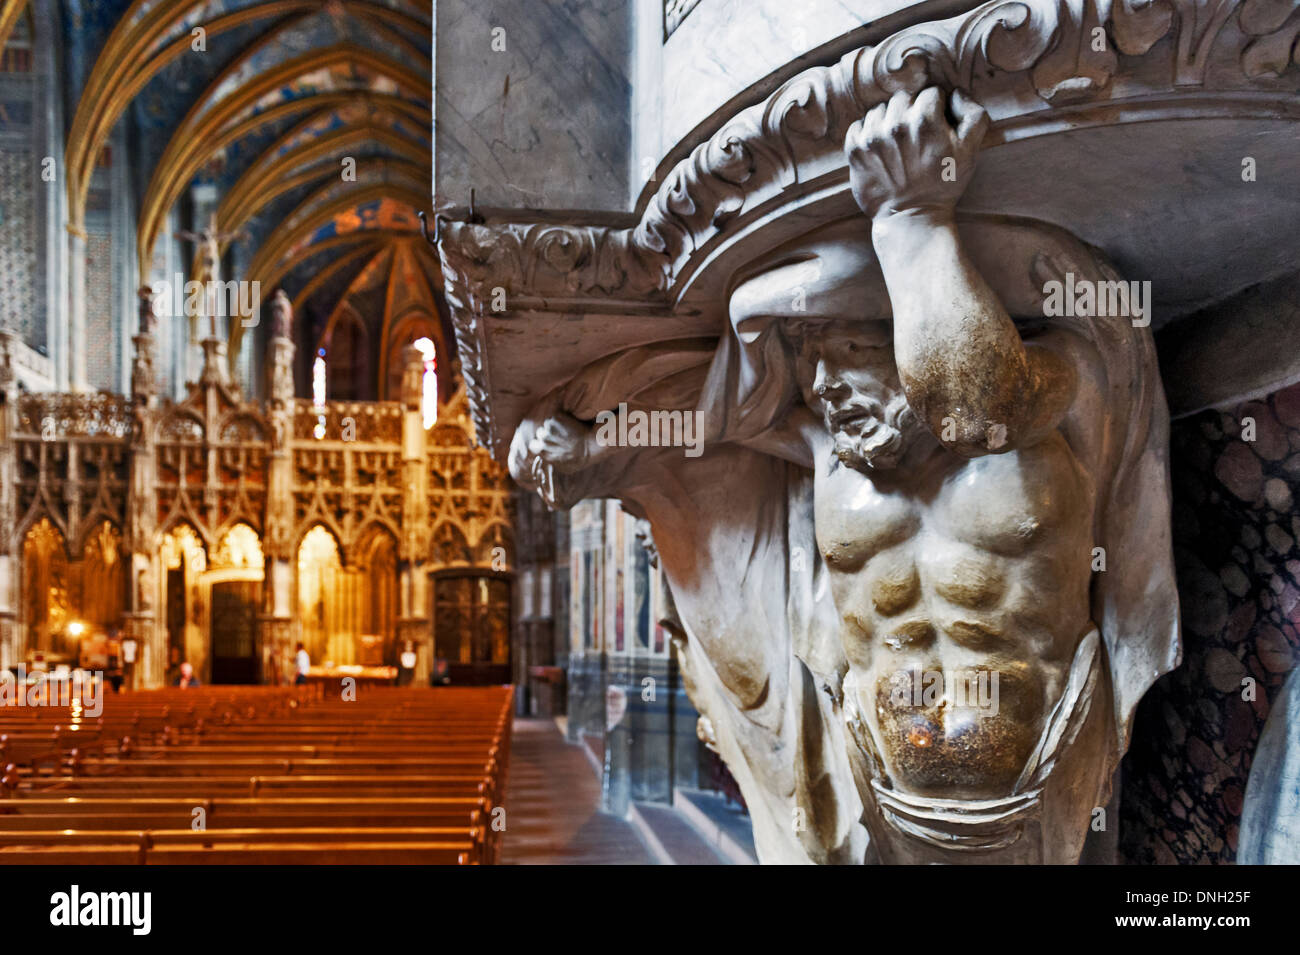 Europe, France, Tarn, Albi. Episcopal city, classified as UNESCO World Heritage. Cathedral Sainte-Cecile. Caryatid. - Stock Image